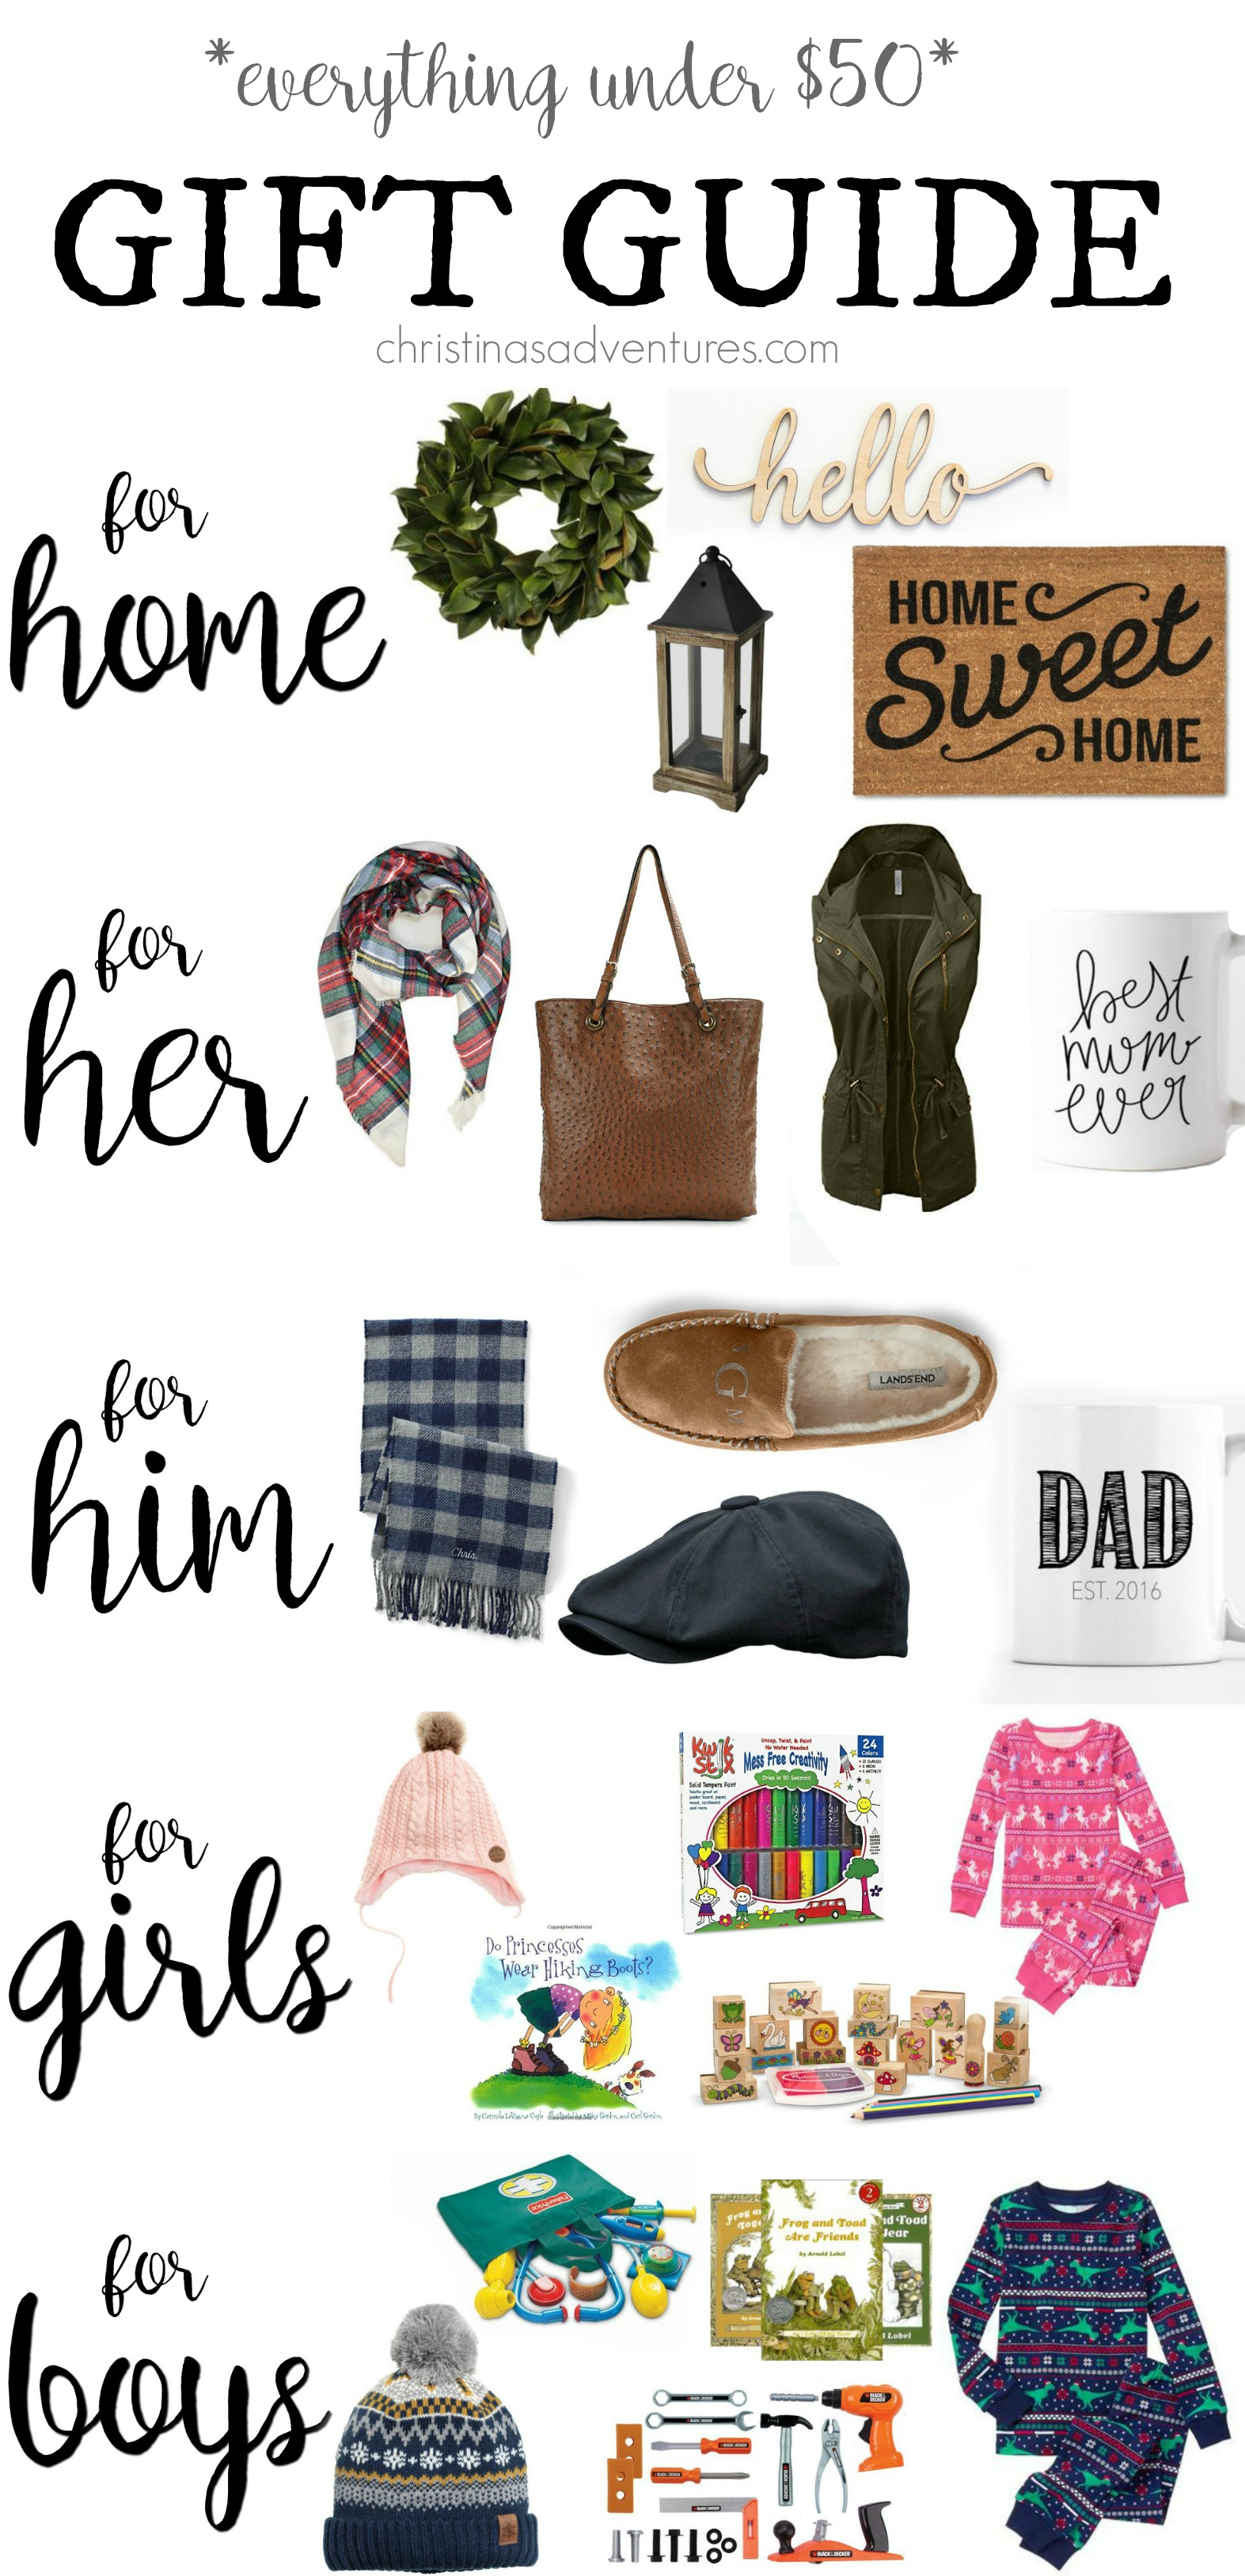 Christmas Gift Guide For Her Him